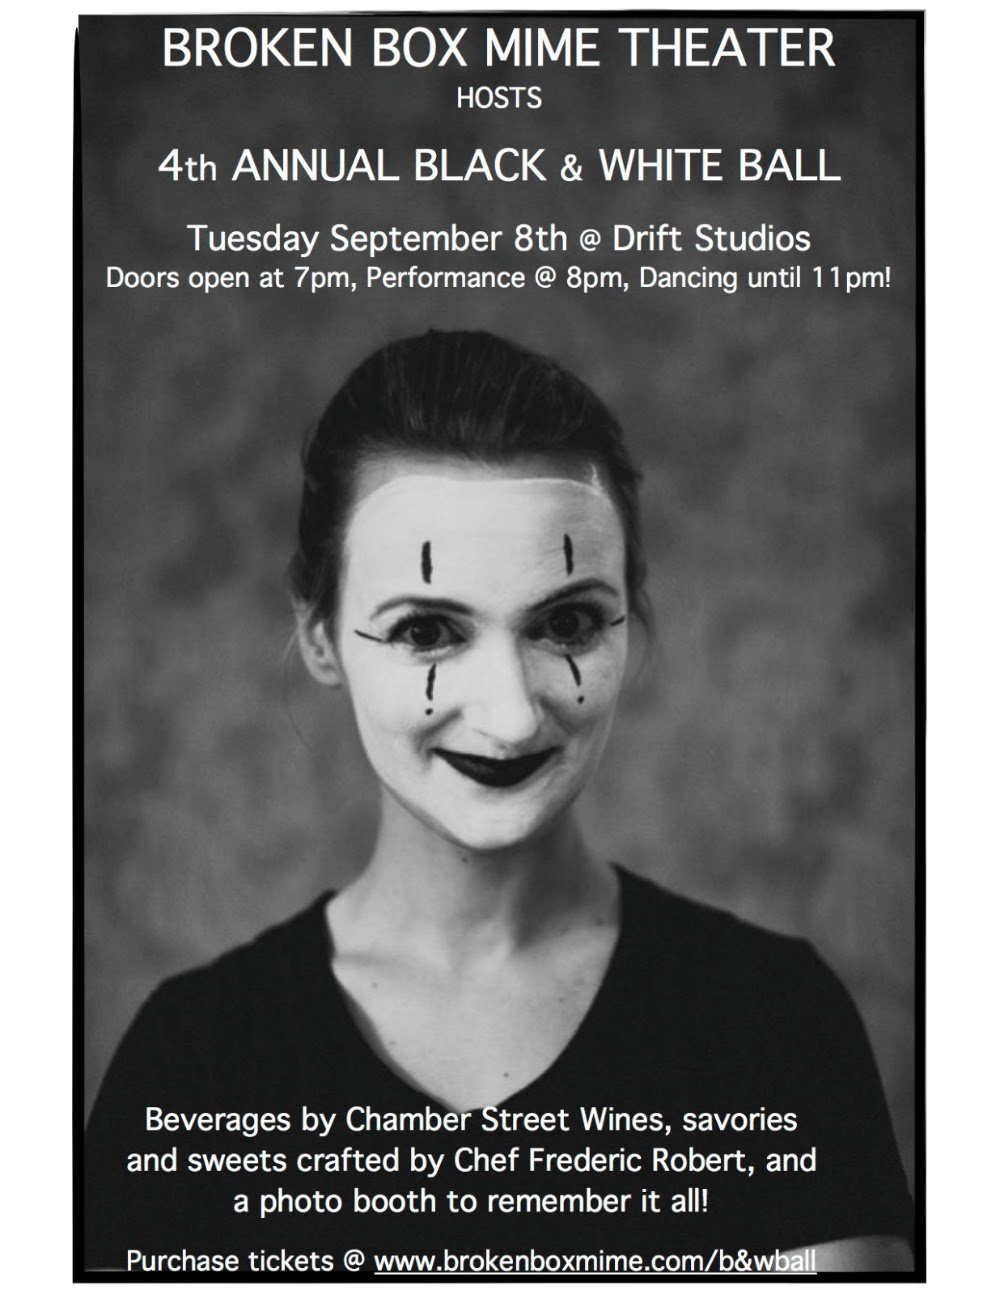 BKBX's 4th Annual Black and White Ball!